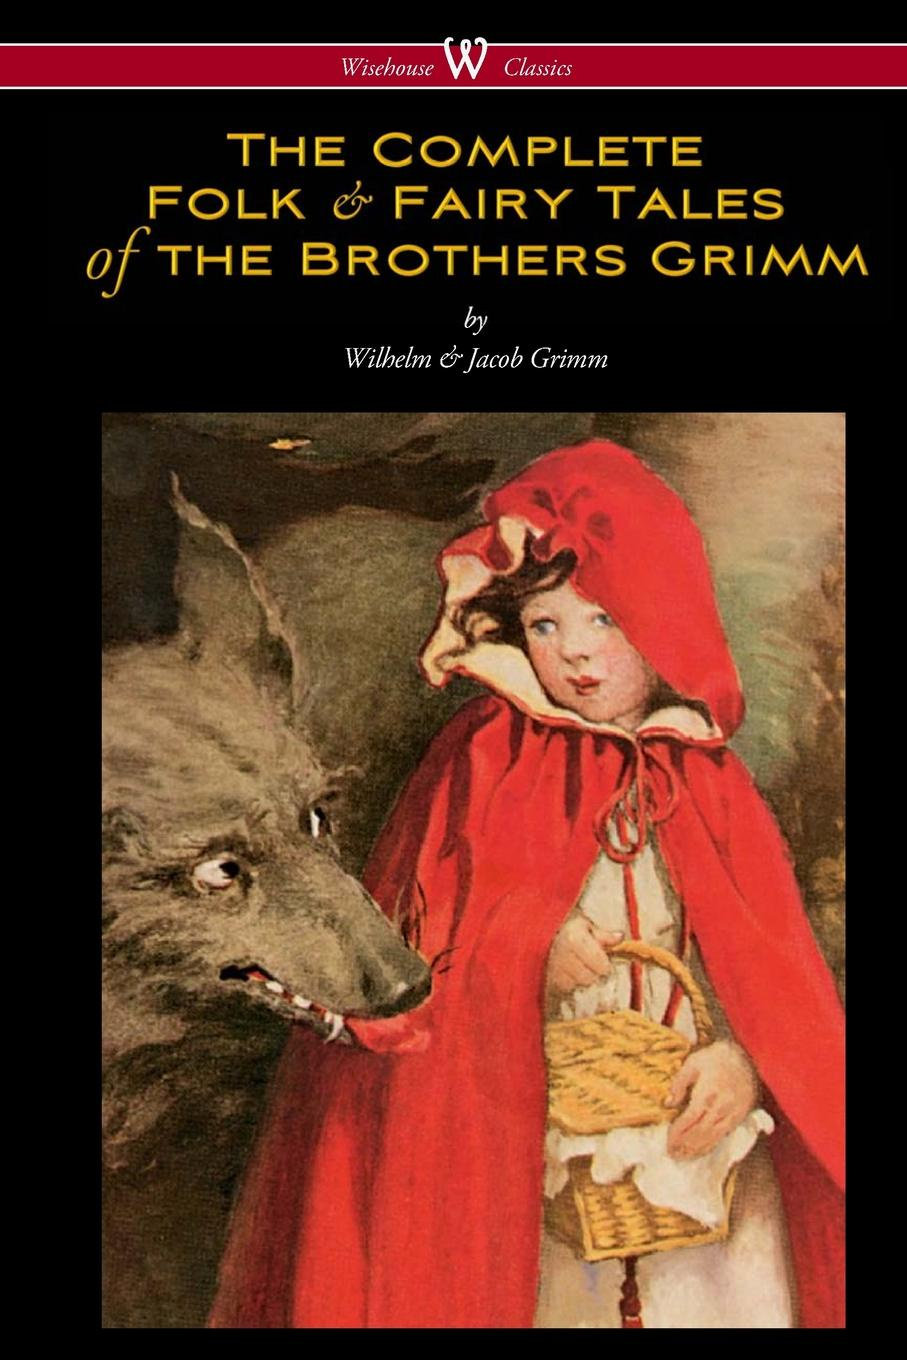 Wilhelm Grimm, Jacob Grimm The Complete Folk . Fairy Tales of the Brothers Grimm (Wisehouse Classics - The Complete and Authoritative Edition)